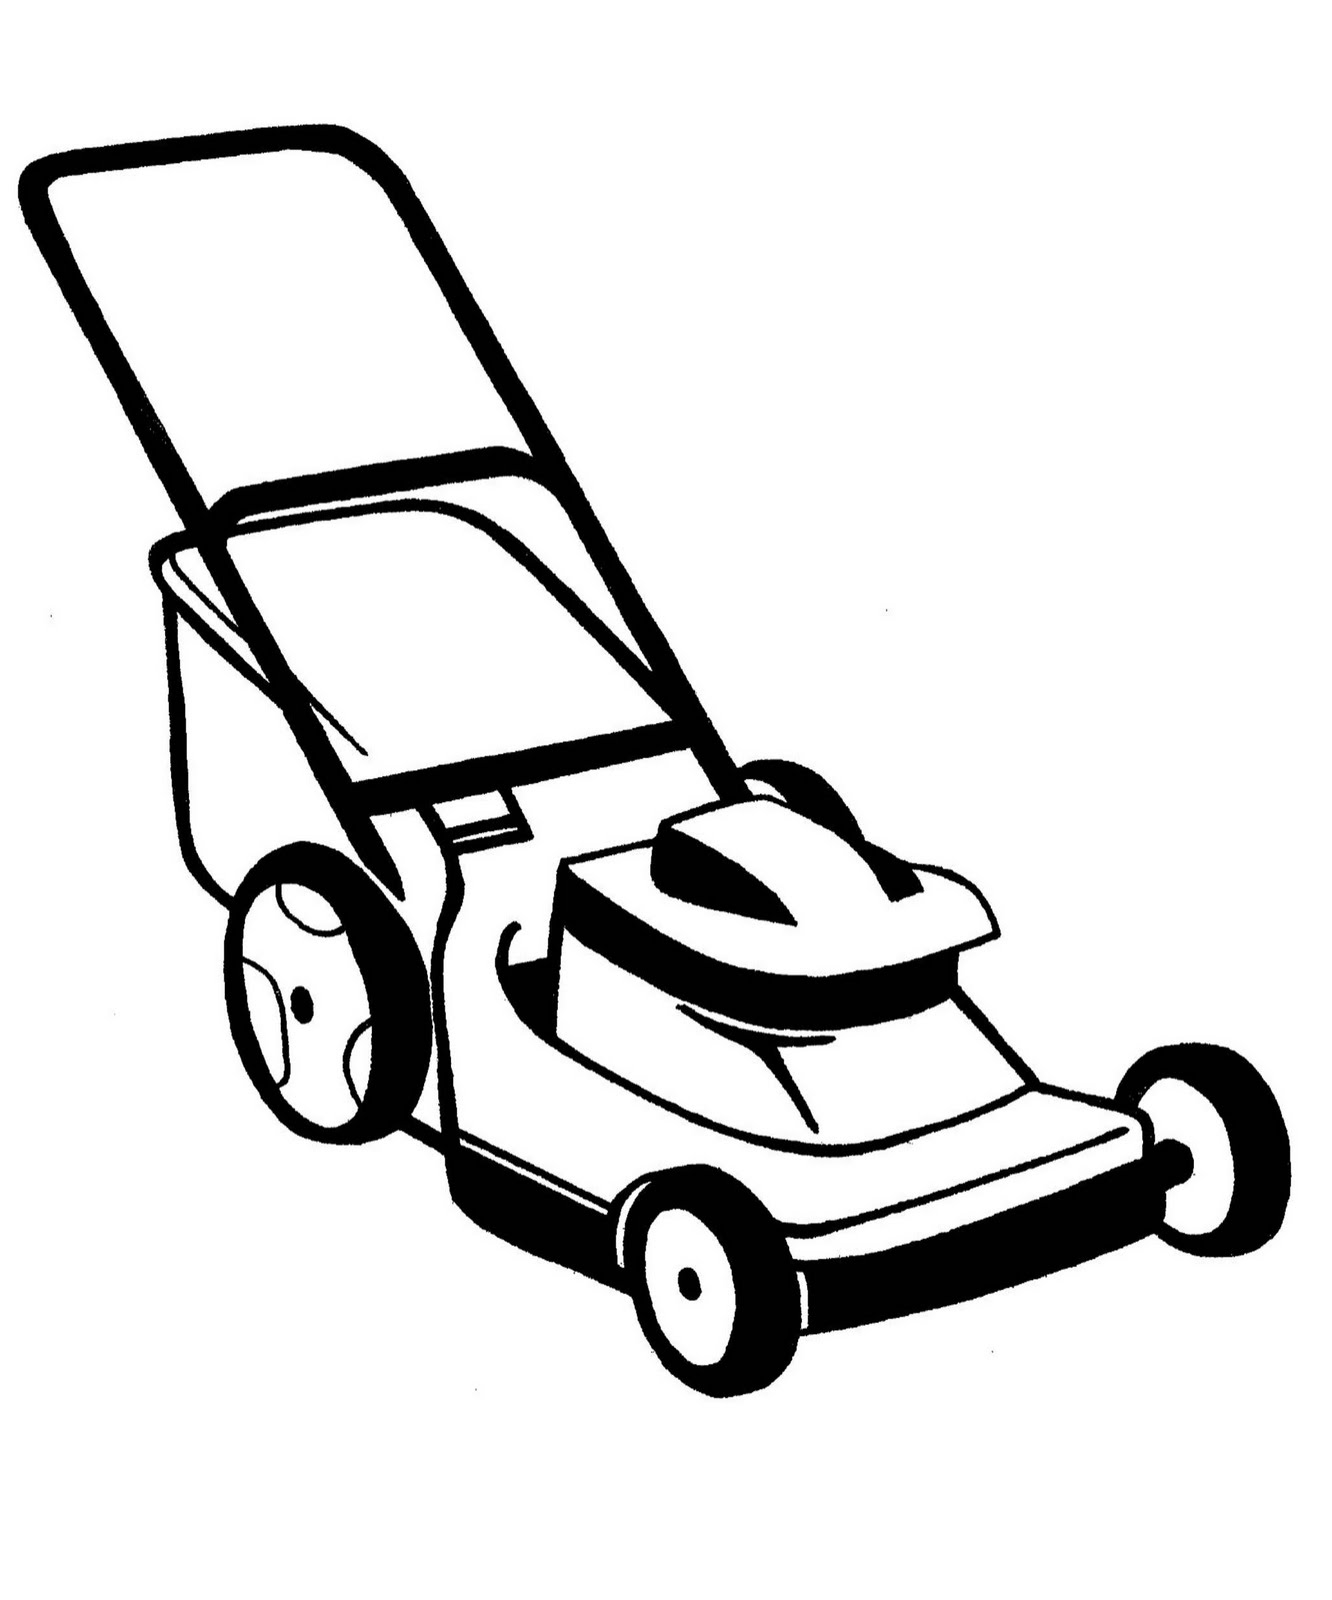 lawn mower coloring page zero turn lawn mower pages coloring pages page lawn coloring mower